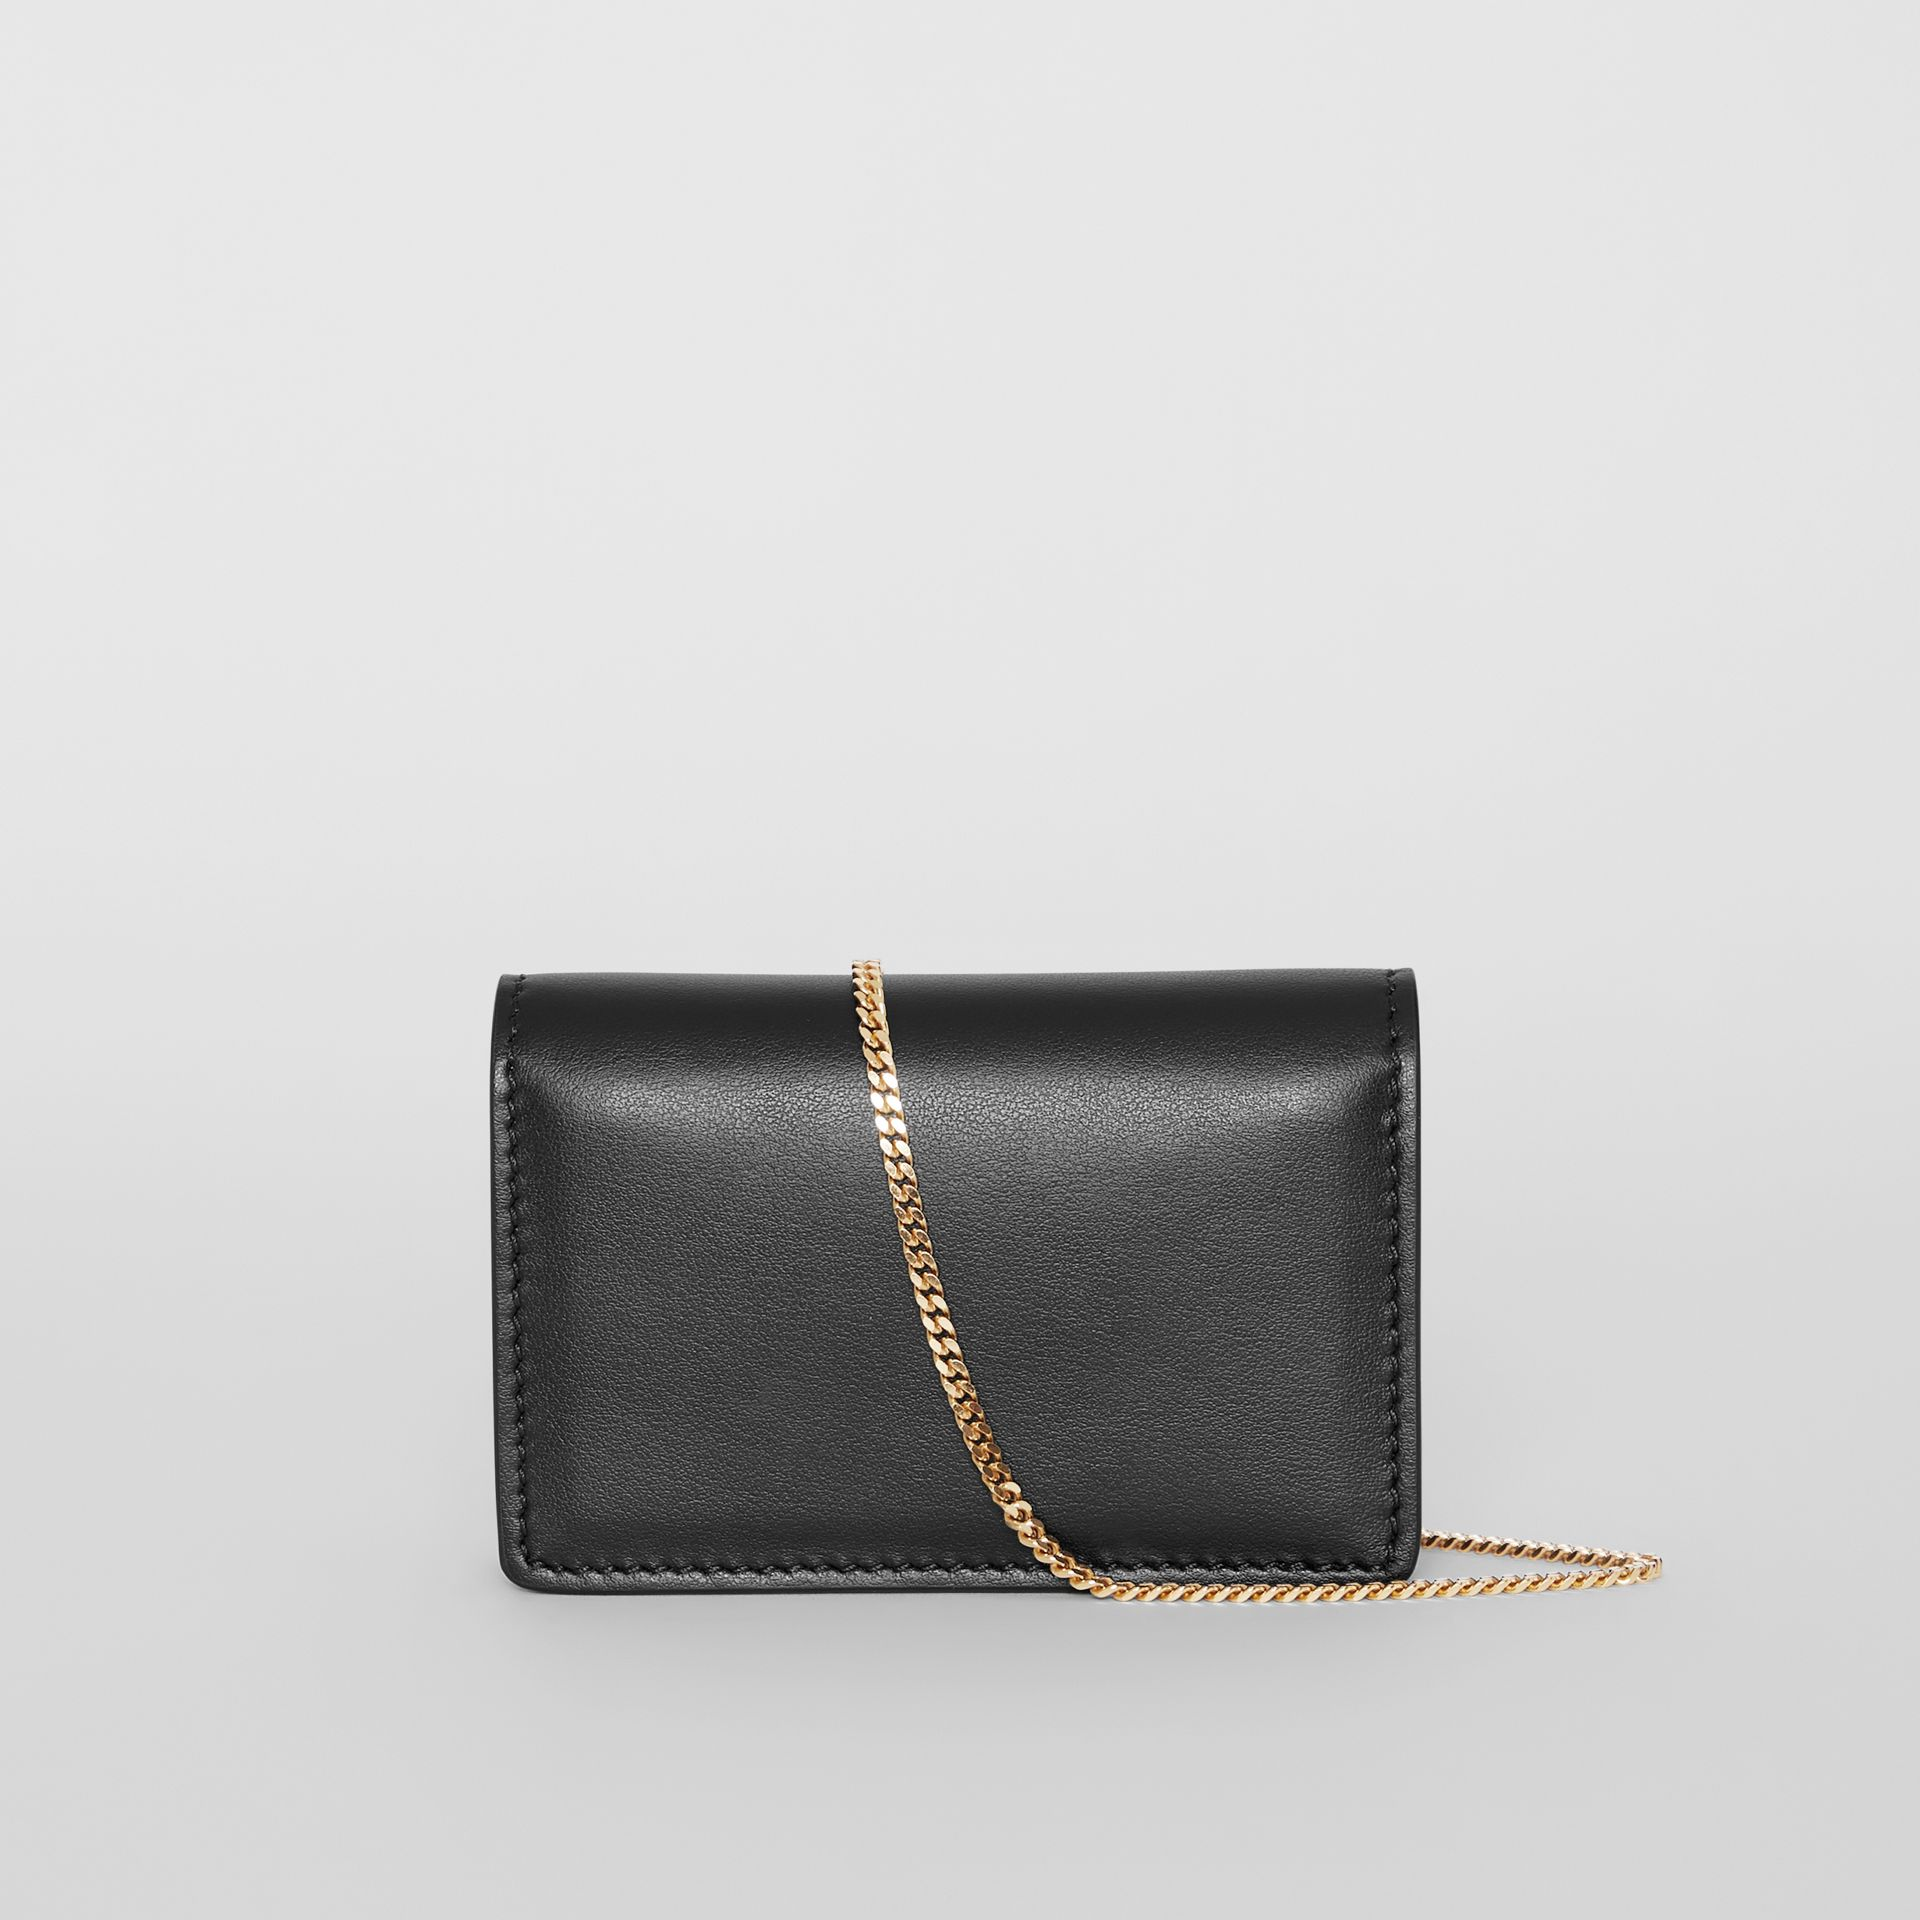 Leather Card Case with Detachable Strap in Black - Women | Burberry - gallery image 7